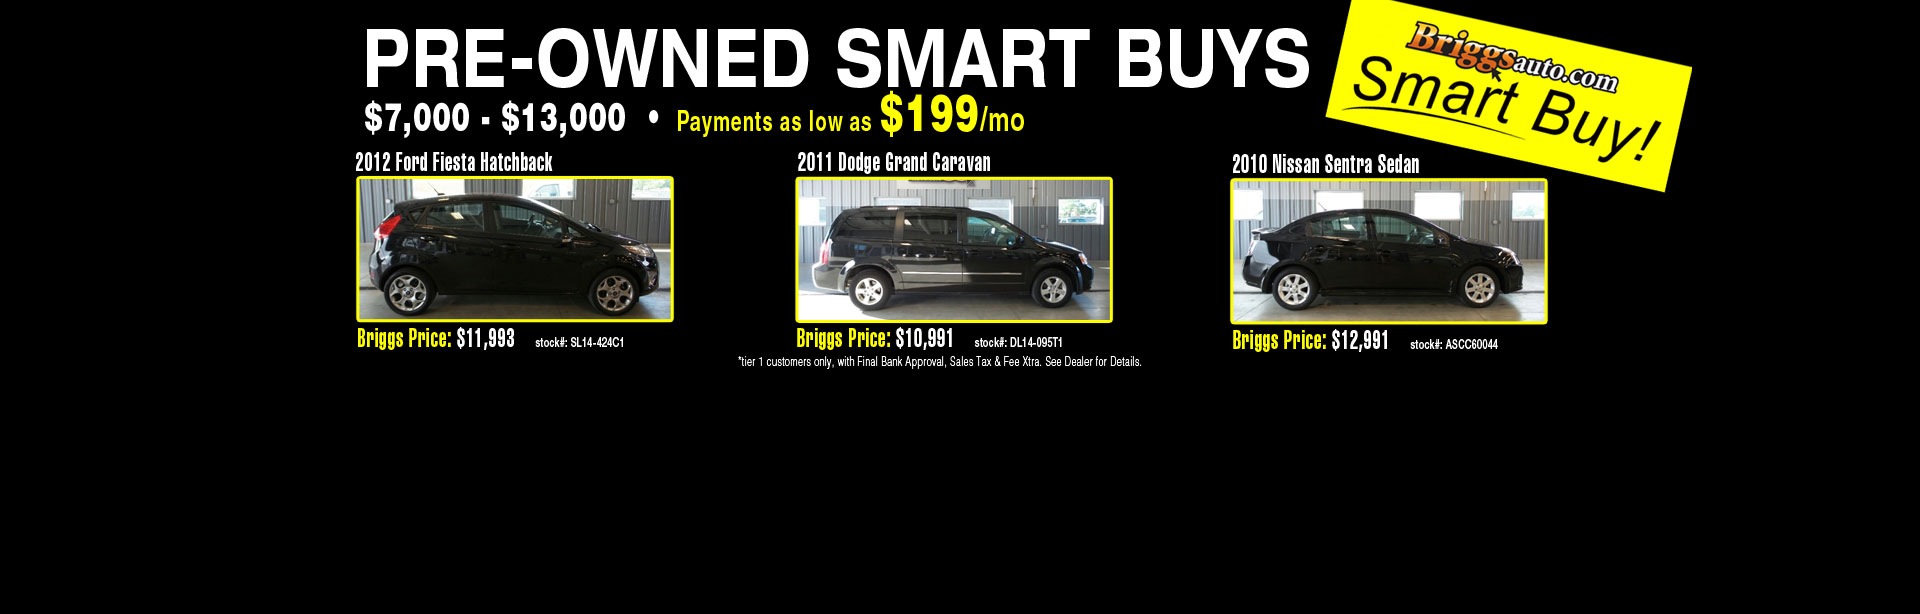 Pre-Owned Smart Buys